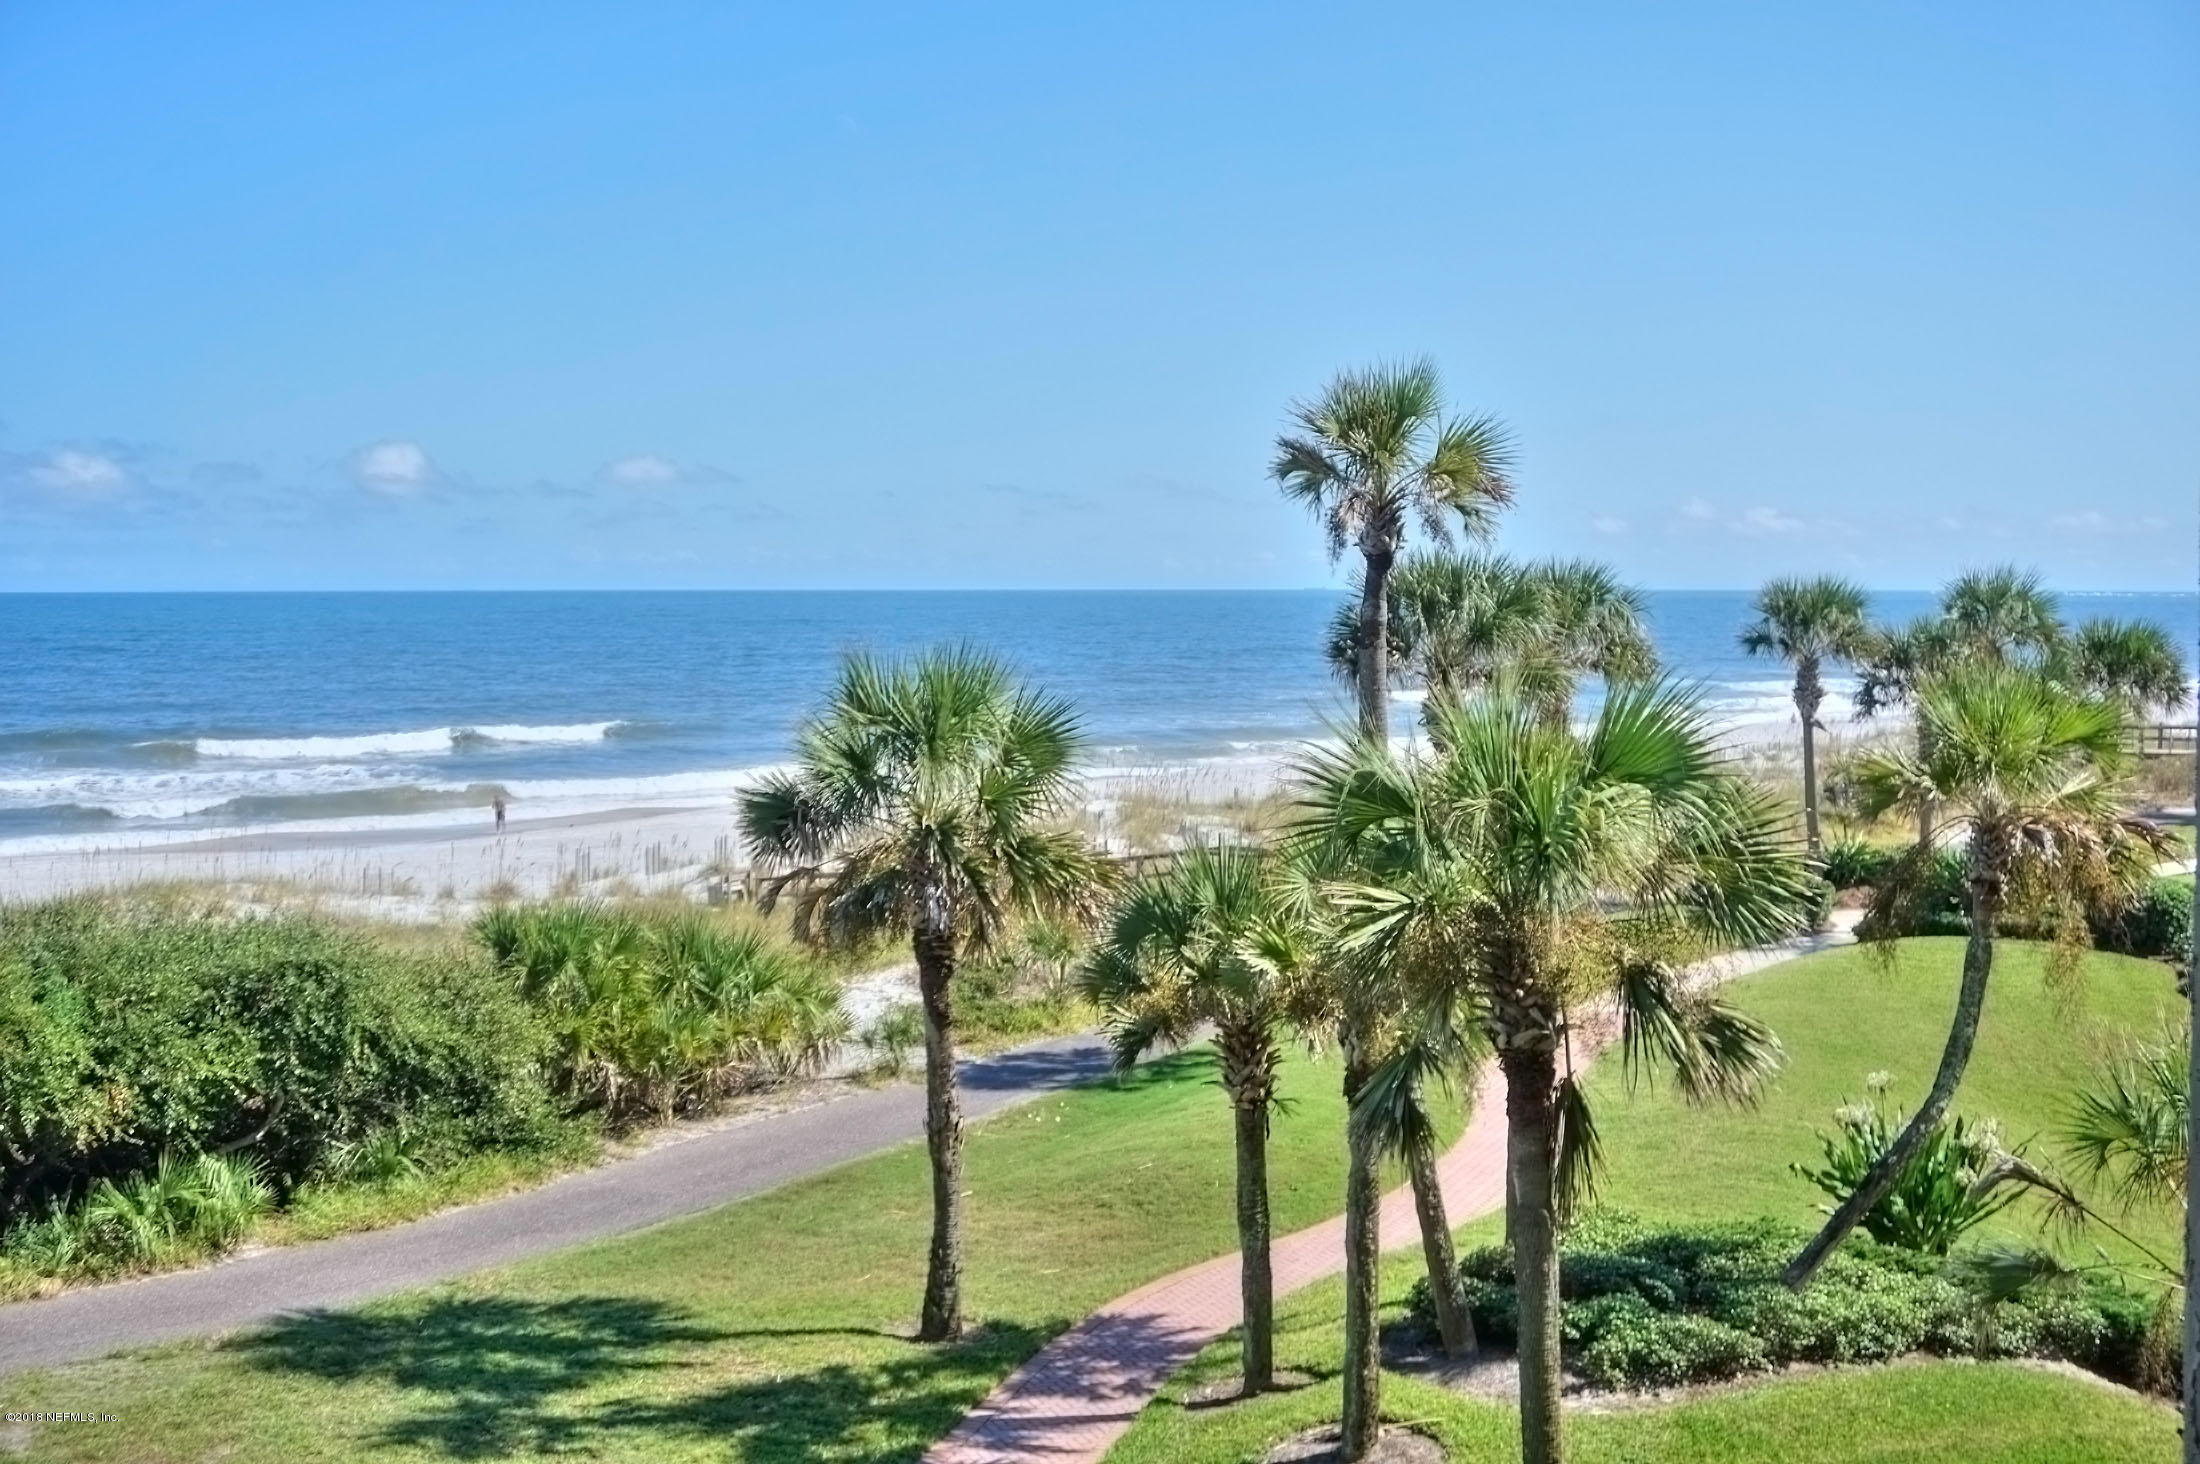 1637 SEA DUNES, FERNANDINA BEACH, FLORIDA 32034, 2 Bedrooms Bedrooms, ,2 BathroomsBathrooms,Residential - condos/townhomes,For sale,SEA DUNES,963985